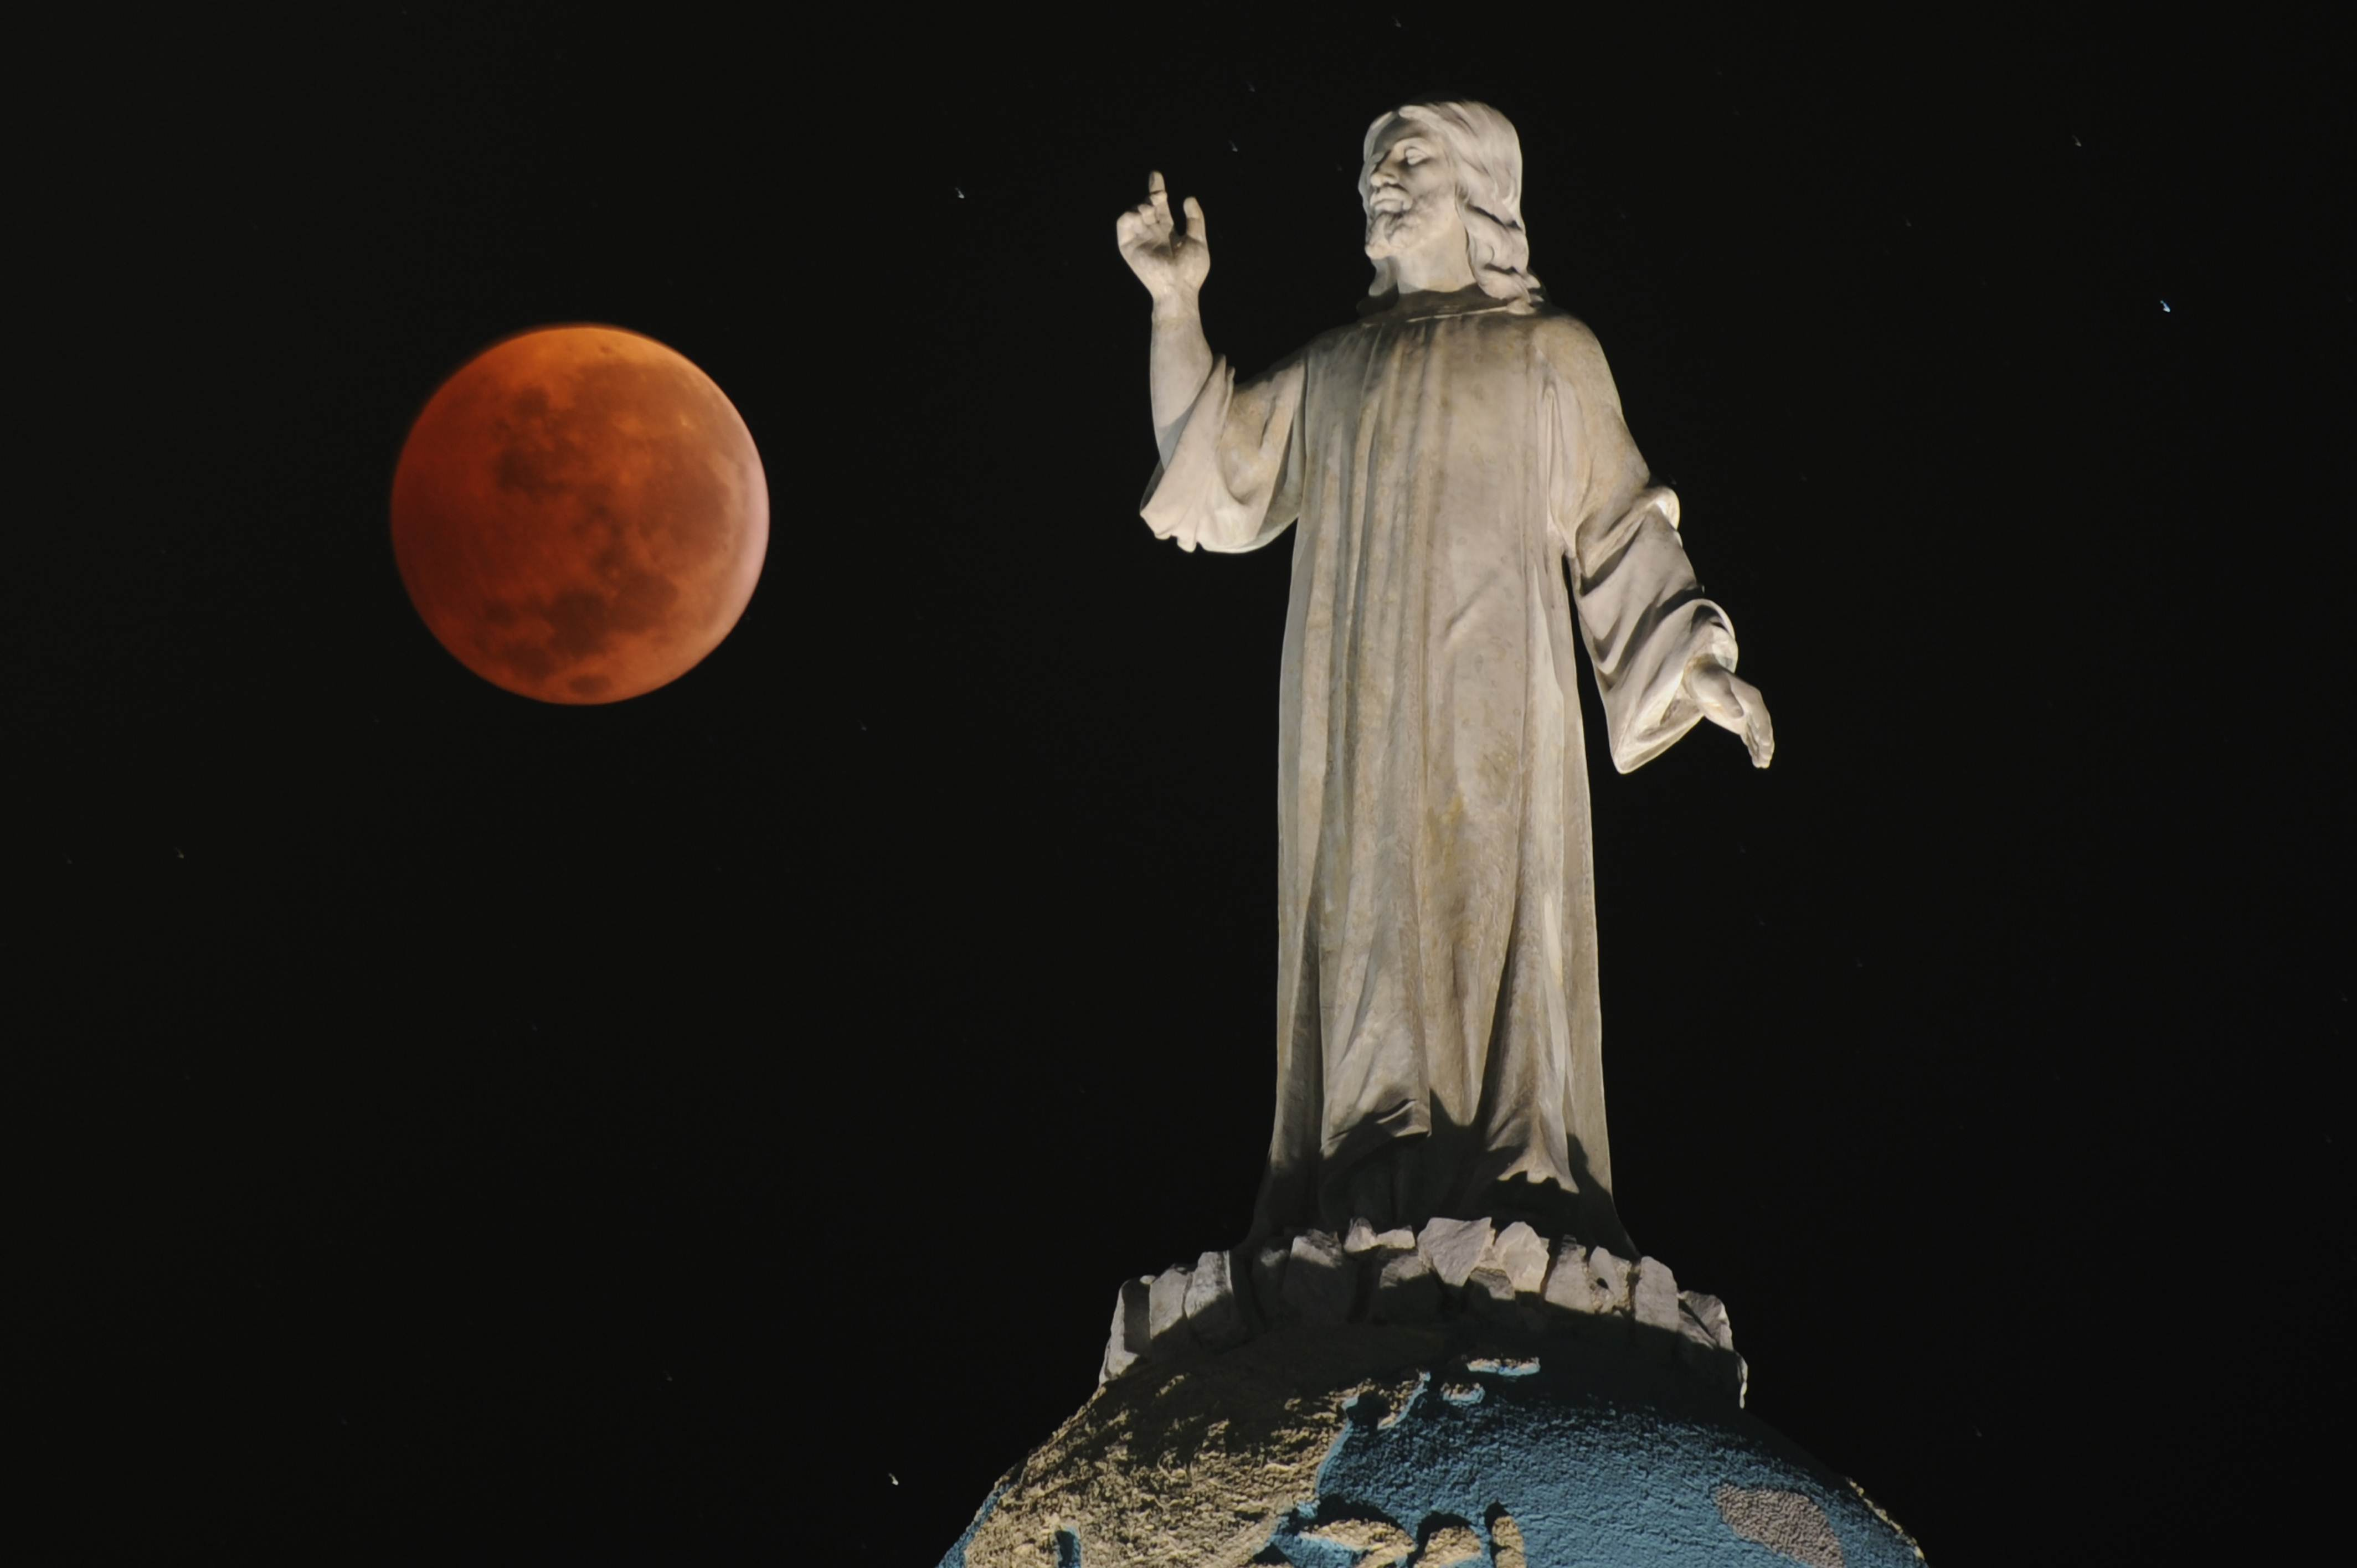 A double exposure picture shows the moon and the monument of The Savior of The World during a total lunar eclipse as seen from San Salvador, El Salvador on December 21, 2010.